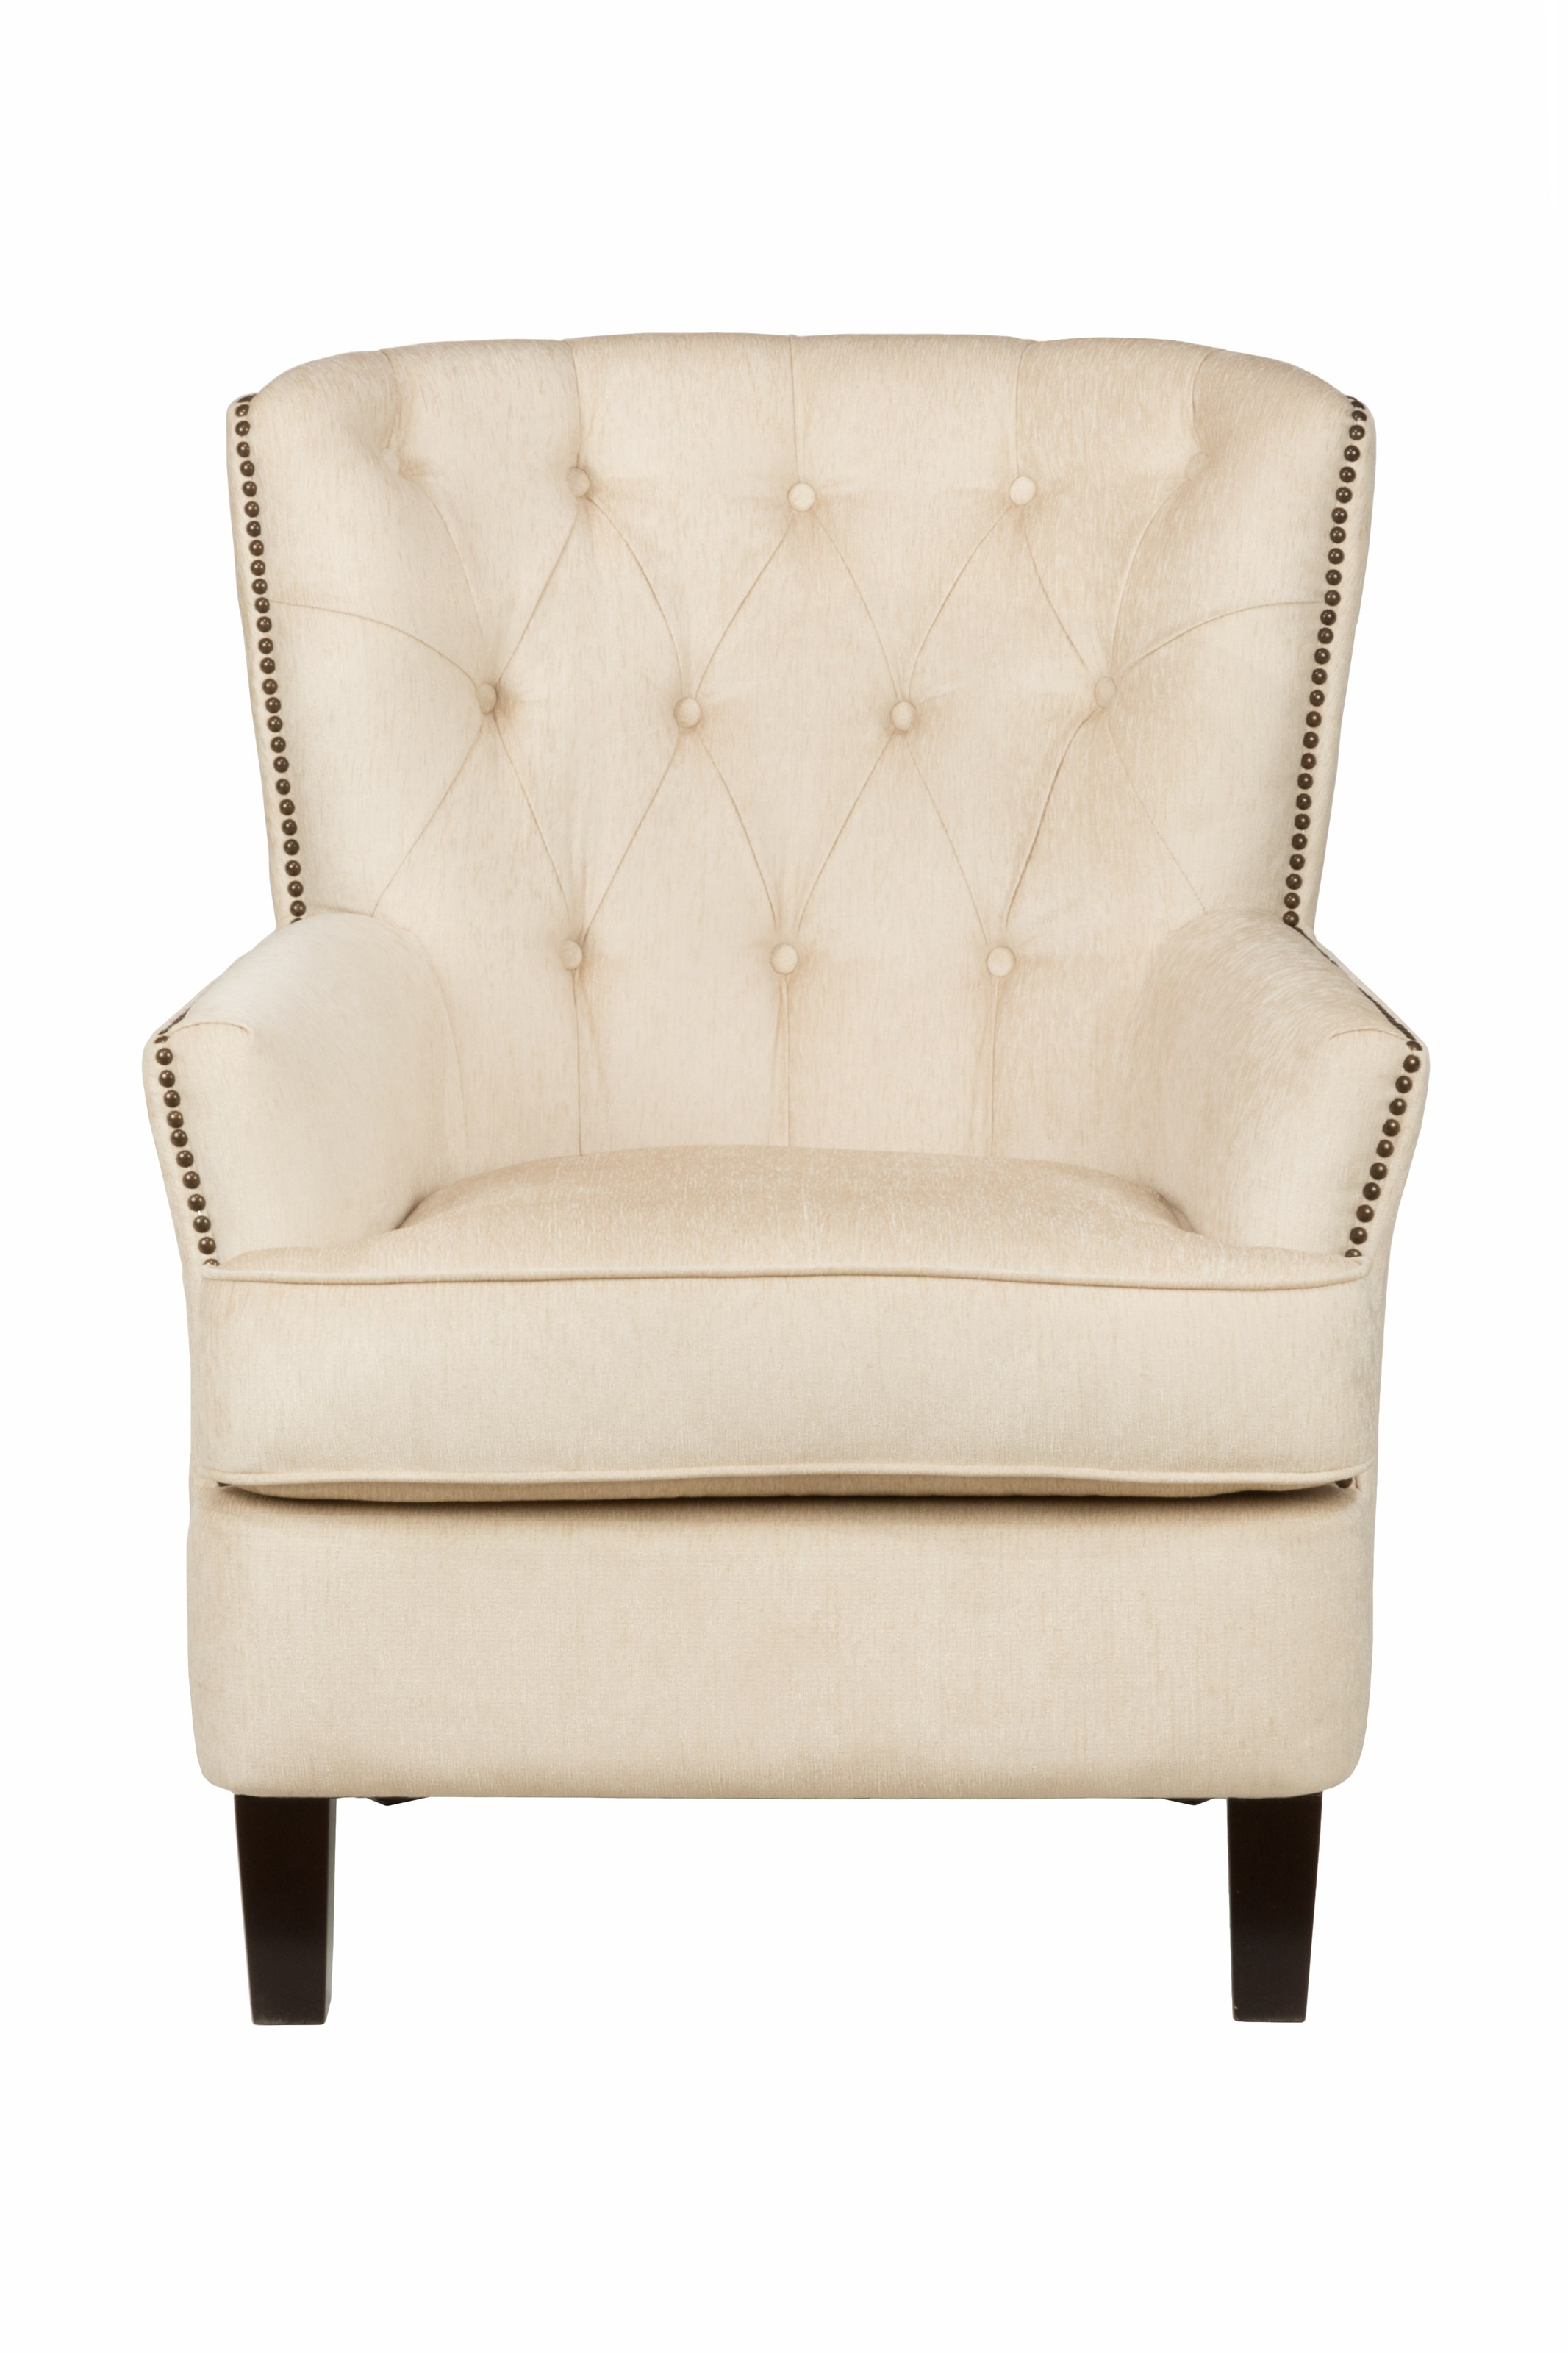 Jofran Easy Living Hudson Arm Chair - Item Number: HUDSON-CH-OYSTER